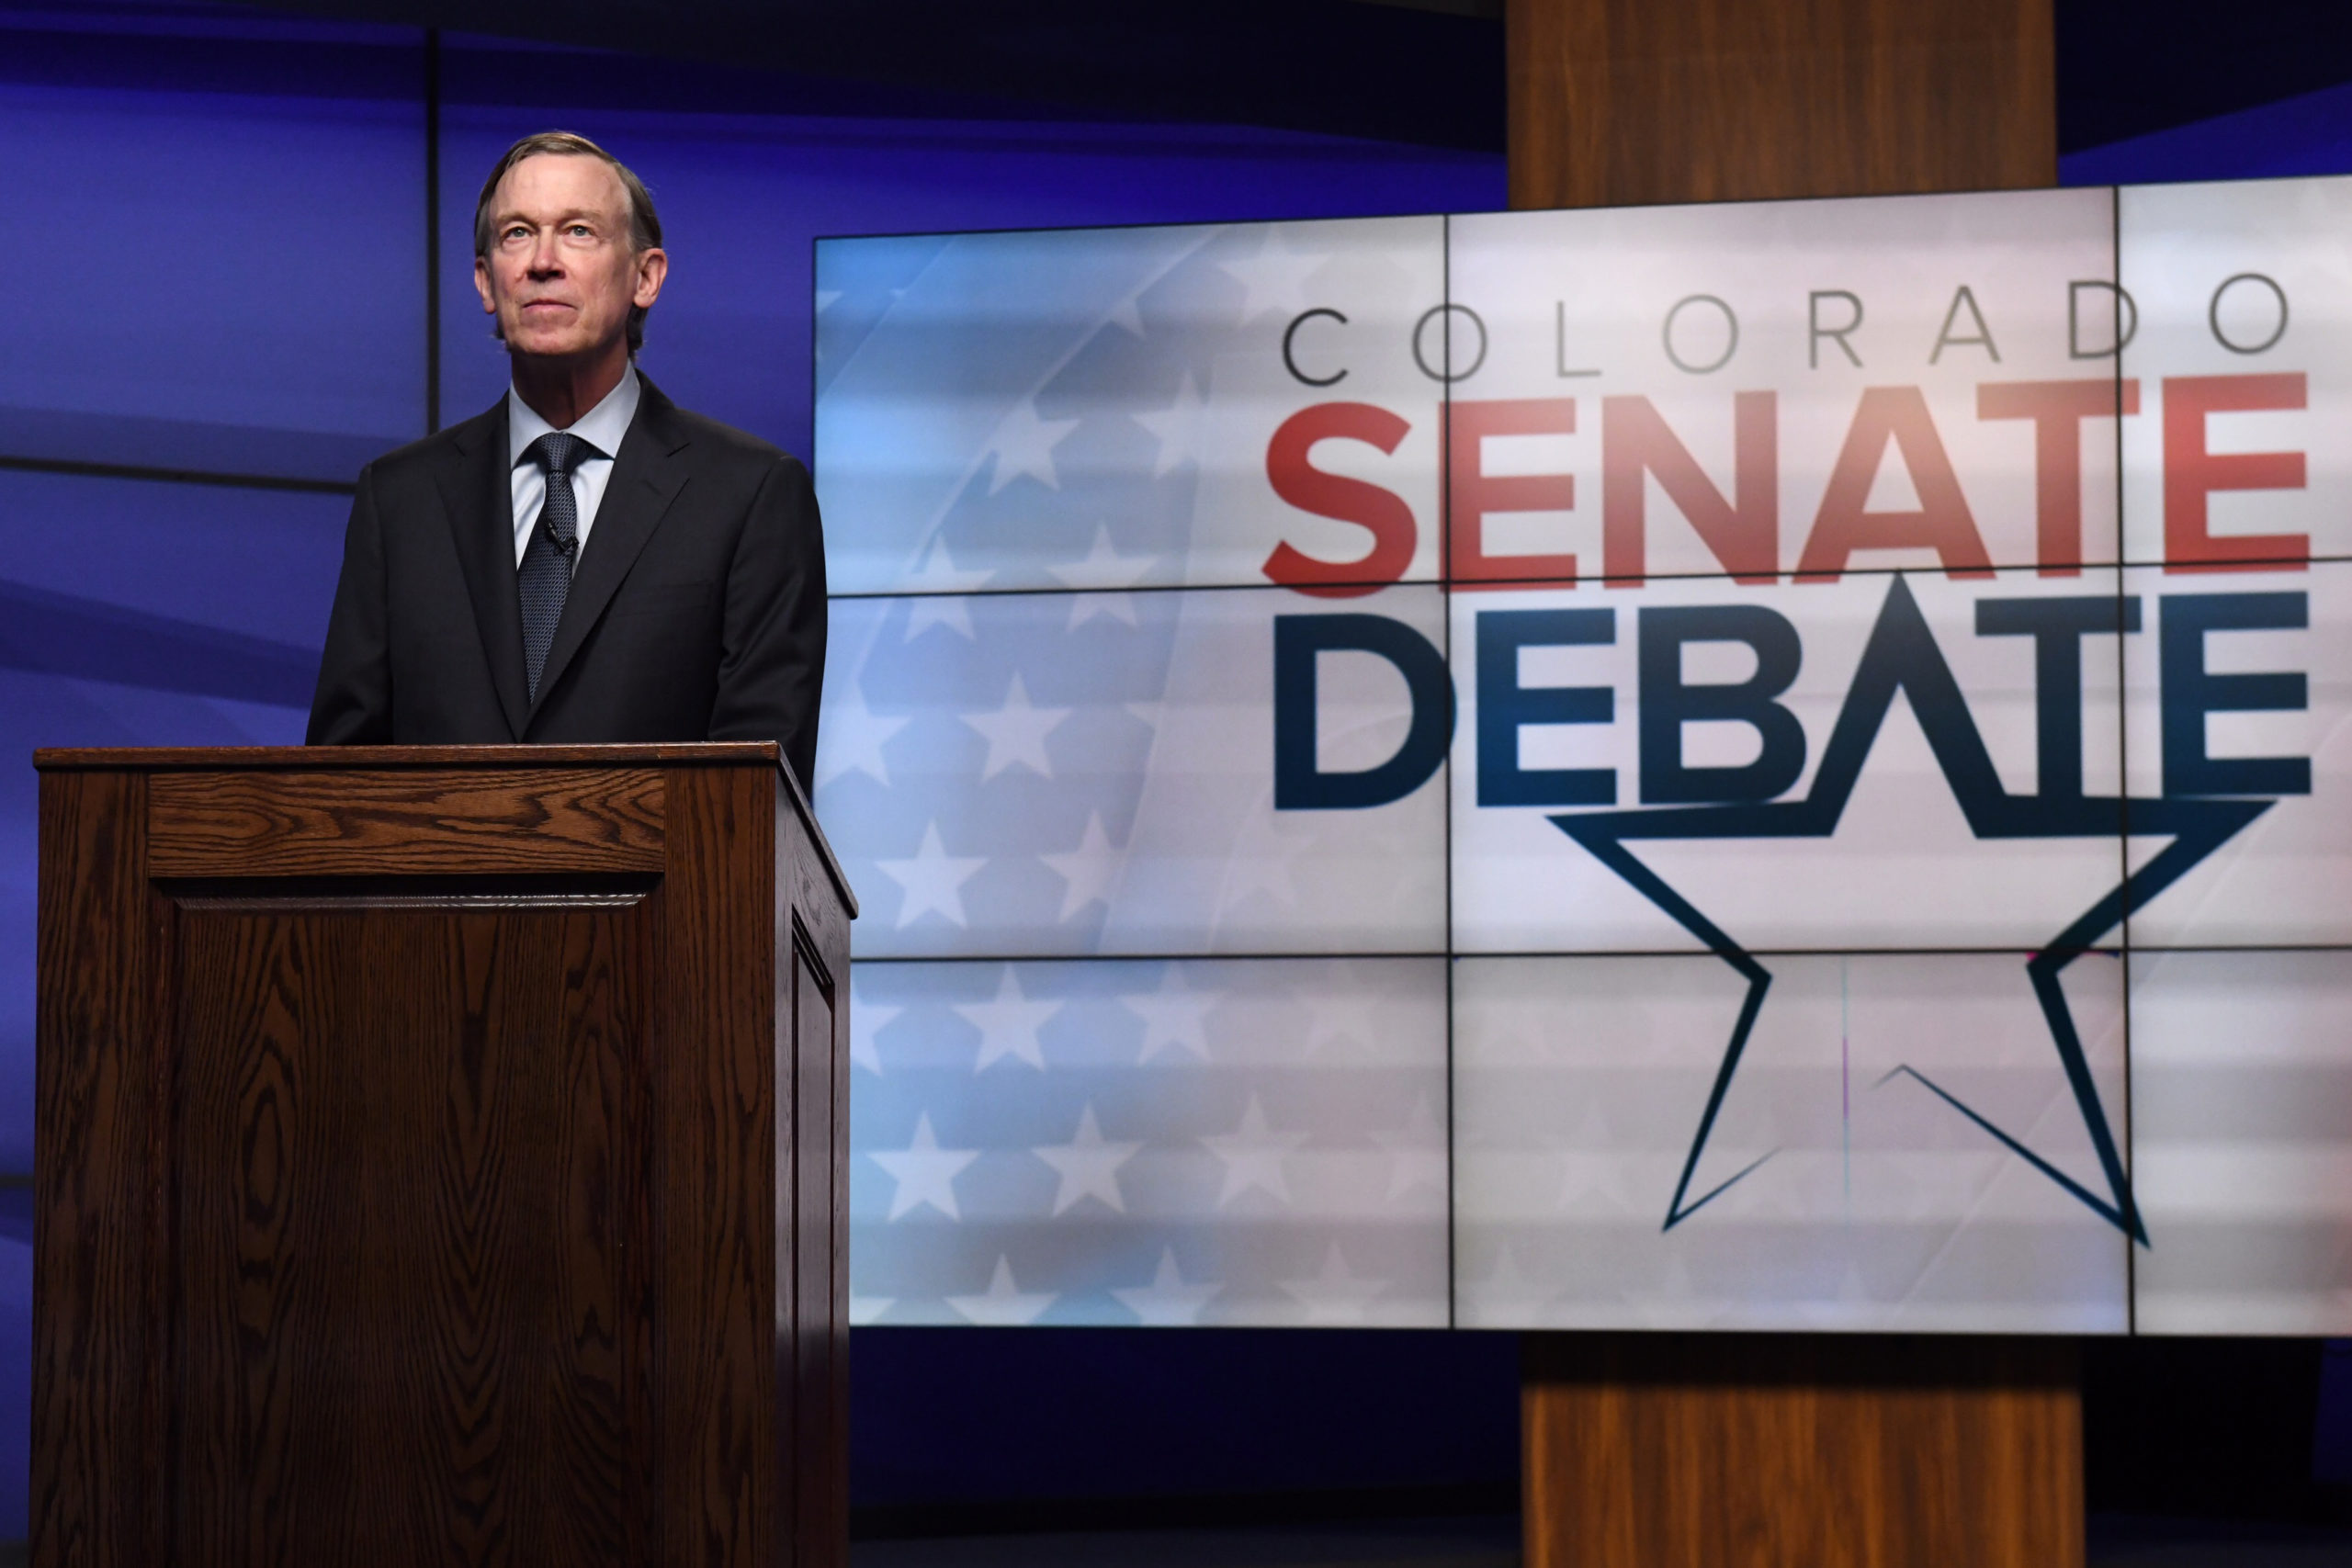 Former Colorado Gov. John Hickenlooper faces off against former state House speaker Andrew Romanoff for a debate in the studio of Denver7 in Denver on Tuesday, June 16, 2020. The debate, held ahead of the Democratic primary, was sponsored by The Denver Post, Colorado Public Radio News, Denver7 and the University of Denver's Center on American Politics. The winner of the June 30 primary will go on to face incumbent Republican Colorado Sen. Cory Gardner in November's general election.